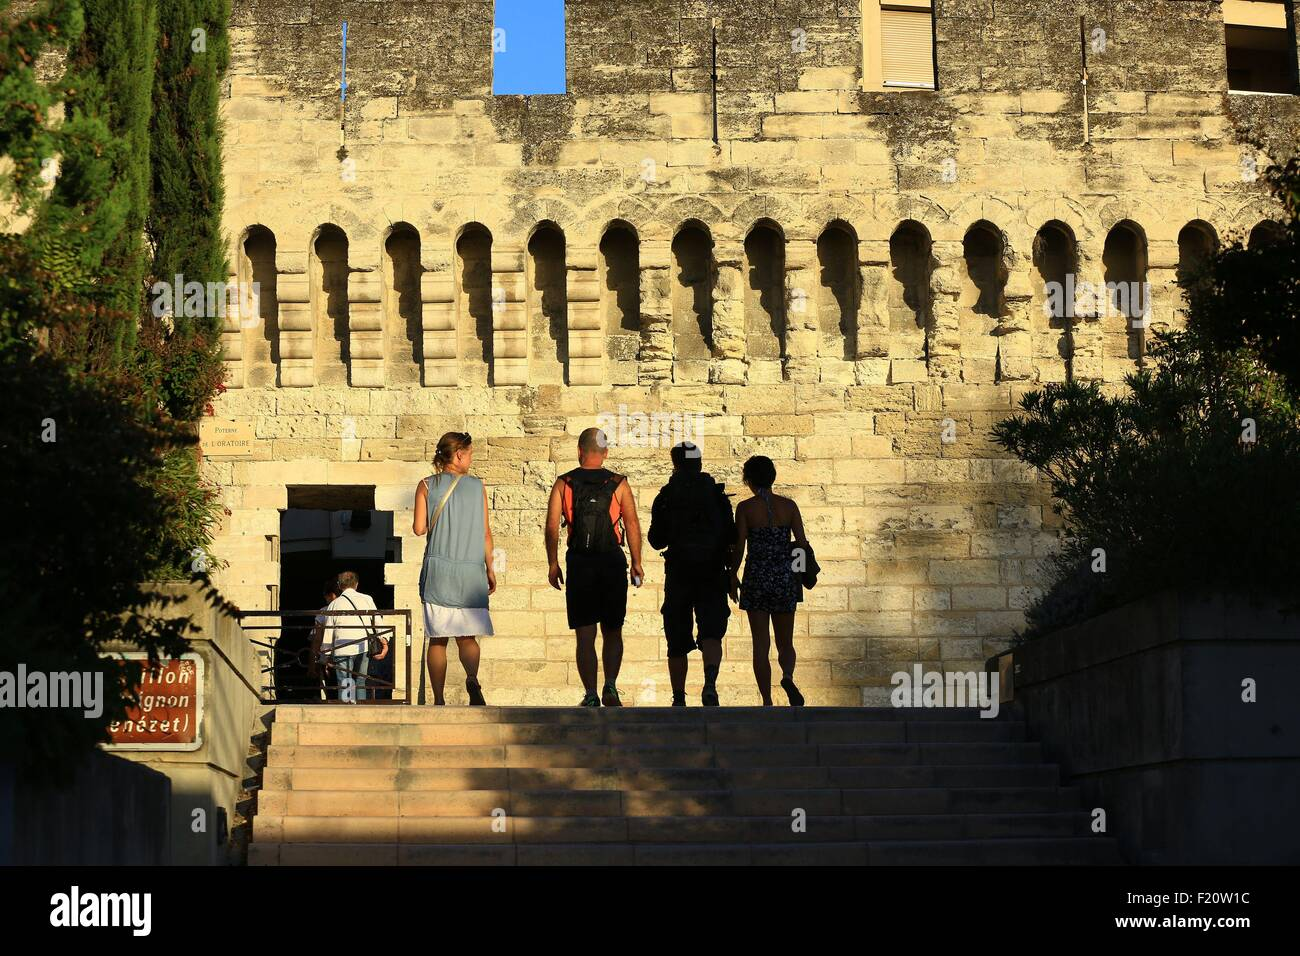 France, Vaucluse, Avignon, Saint Benezet access to the bridge (12th century), listed UNESCO World Heritage - Stock Image